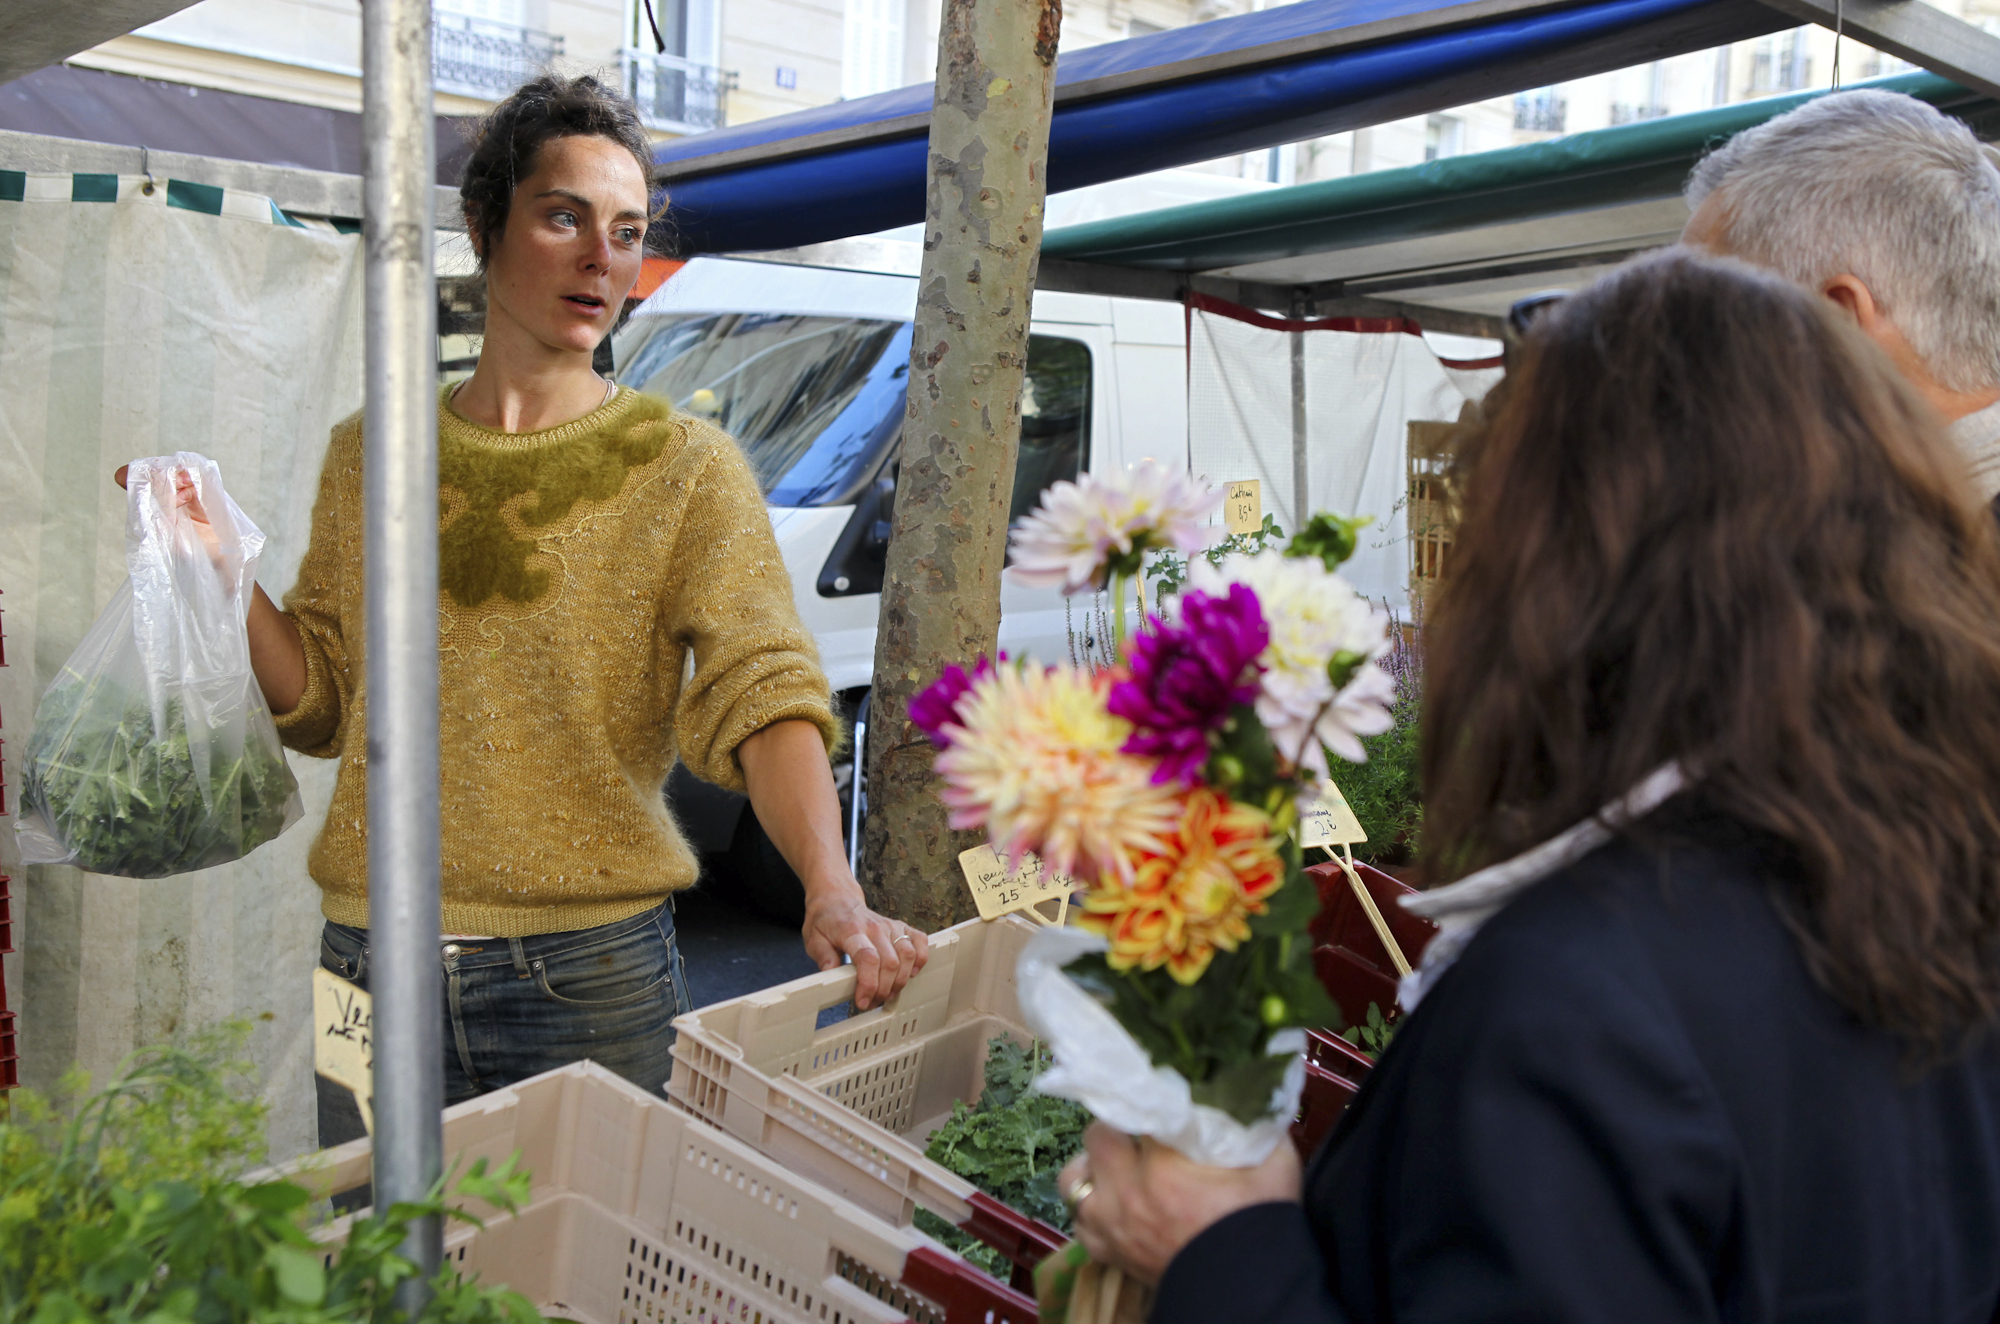 Raspail Organic Market. Hermione Boehrer's stall where she sells kale, aromatic herbs & various young sprouts.